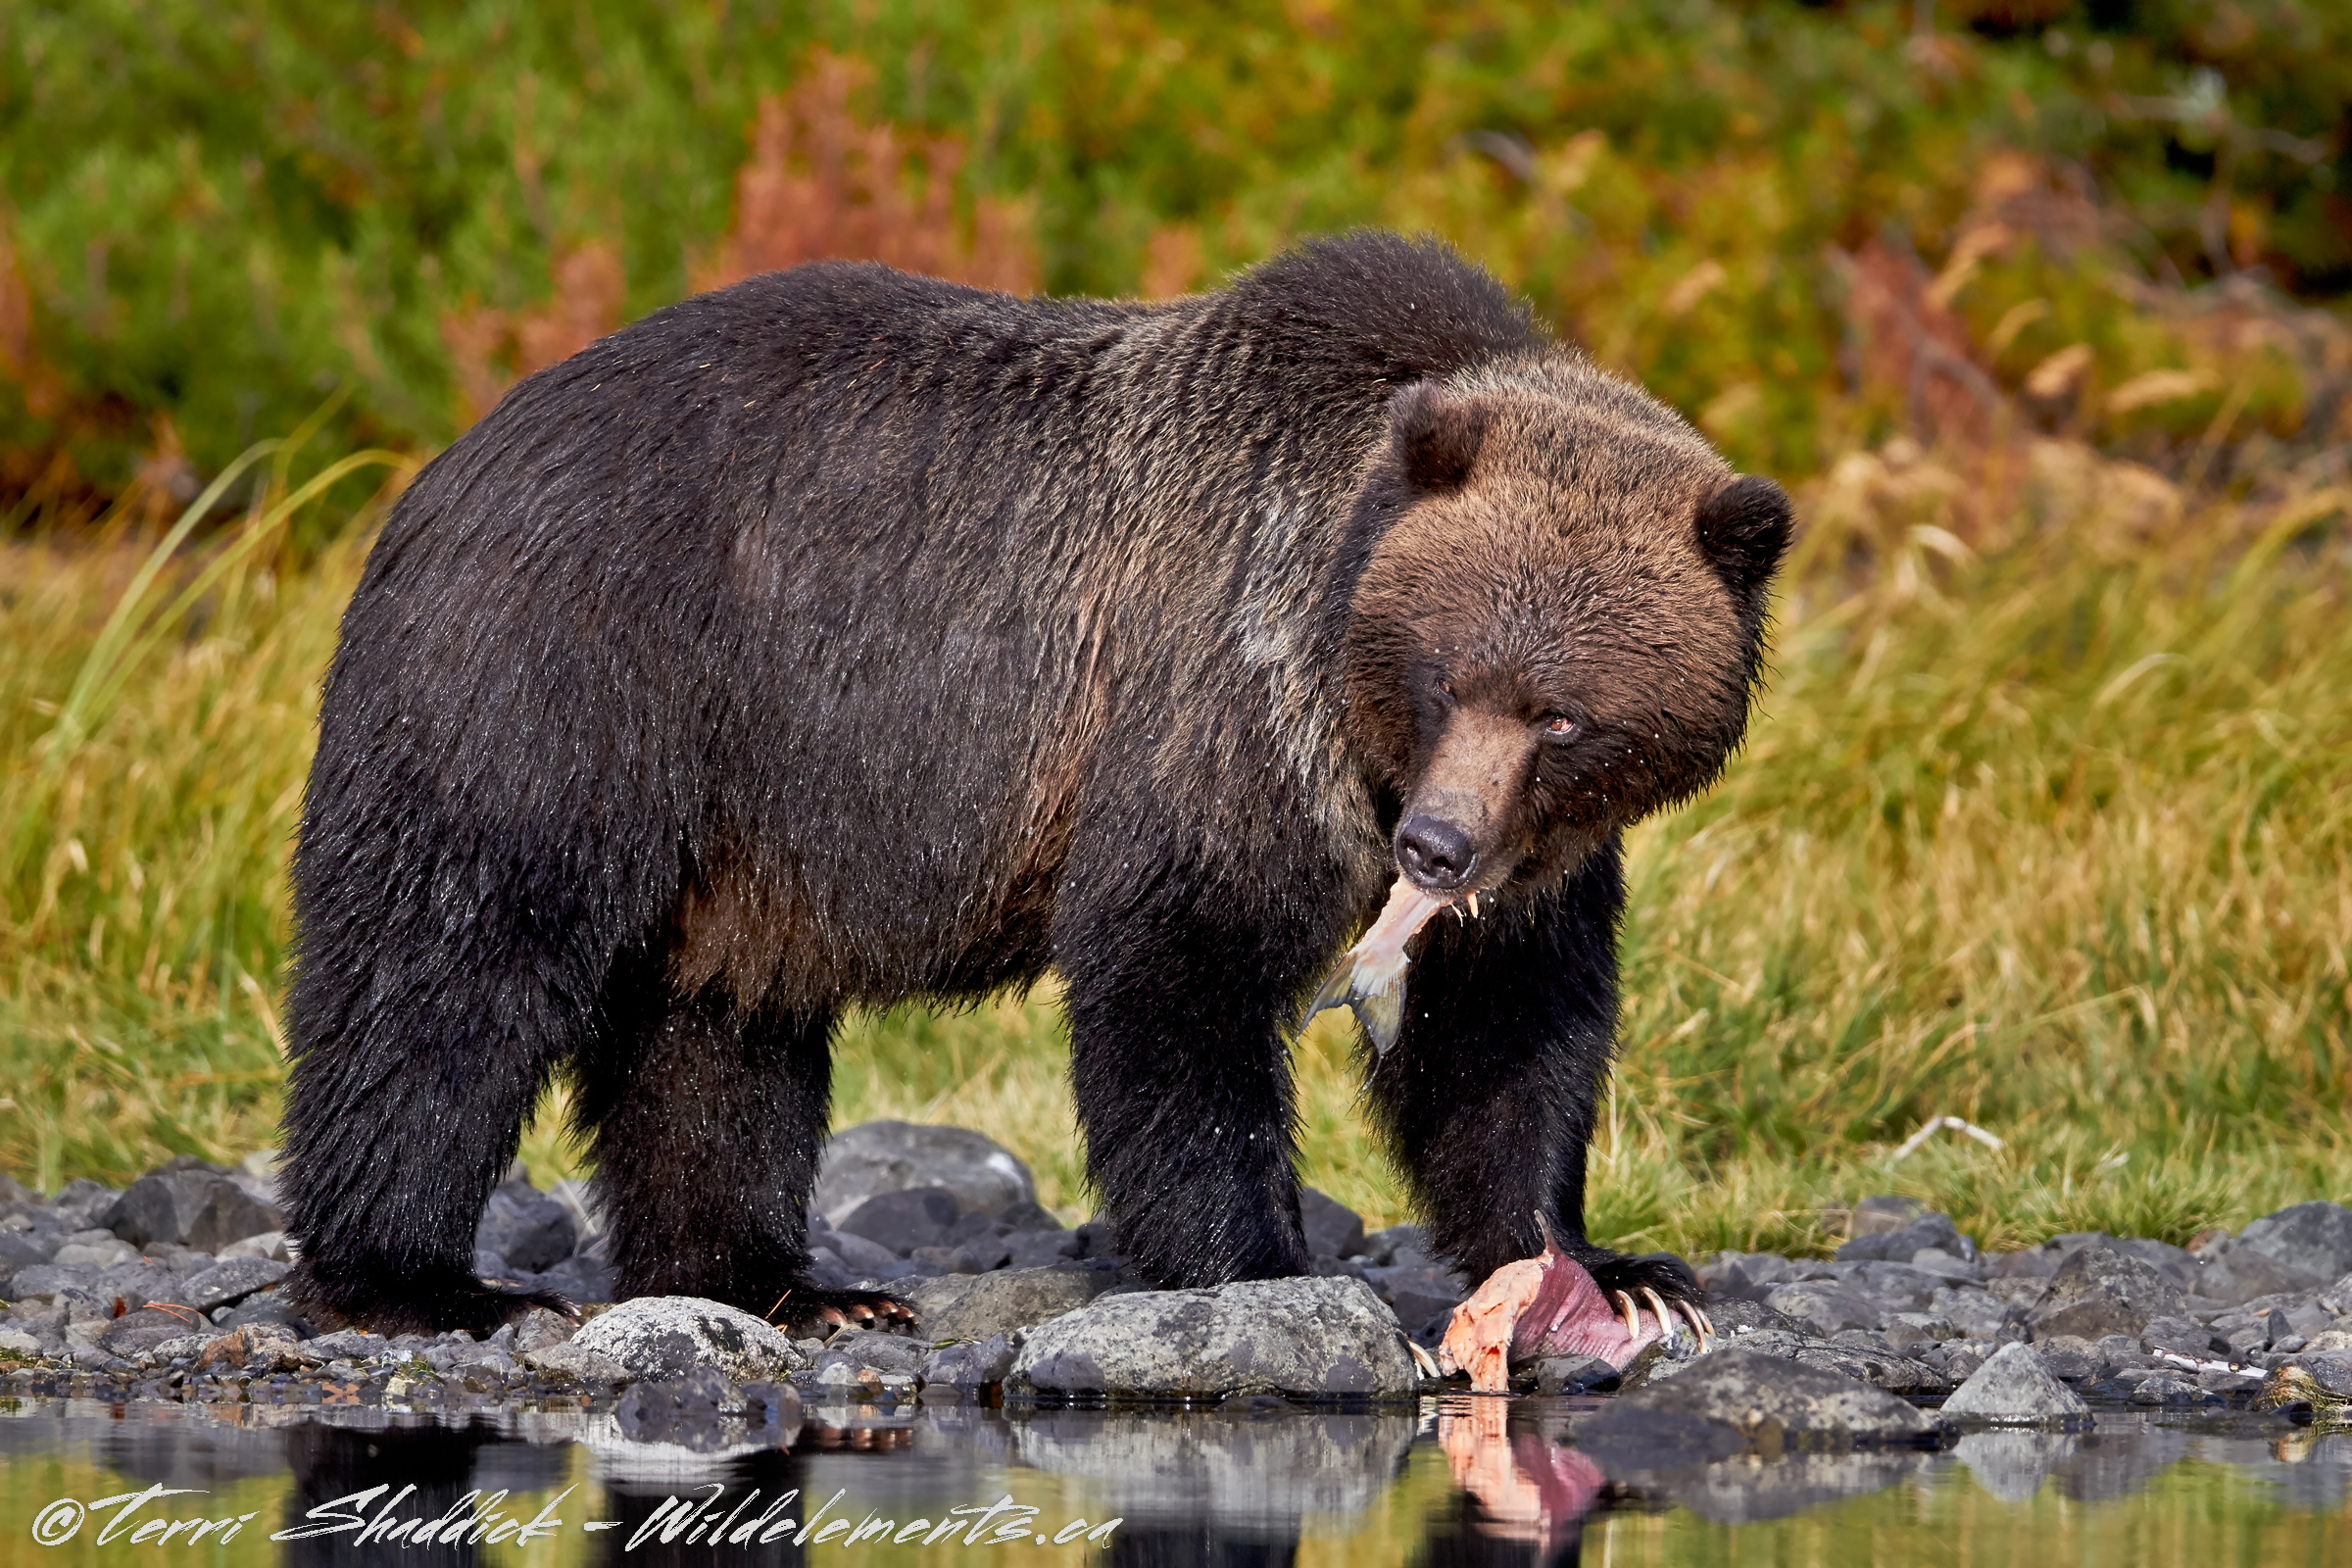 Grizzly Bear eating Pink Salmon